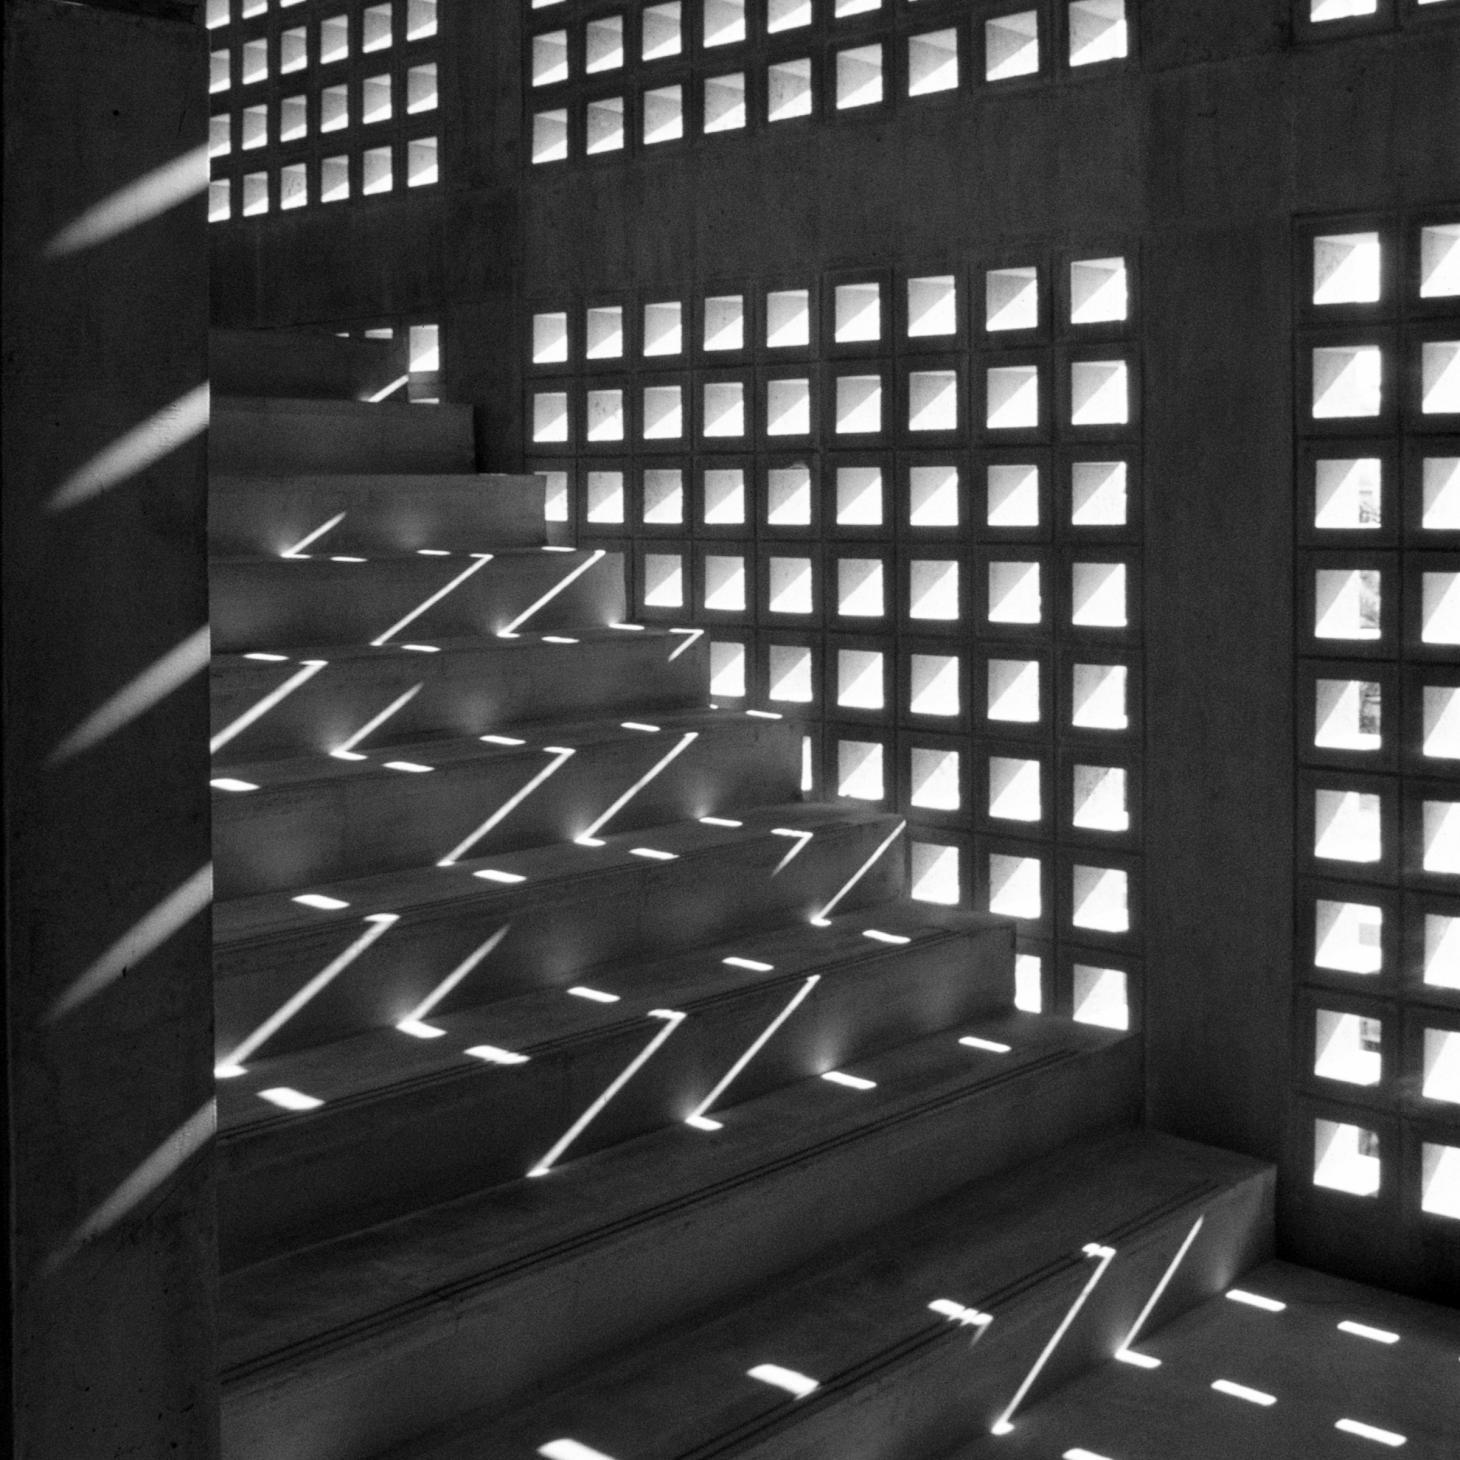 Photograph taken by Tadao Ando